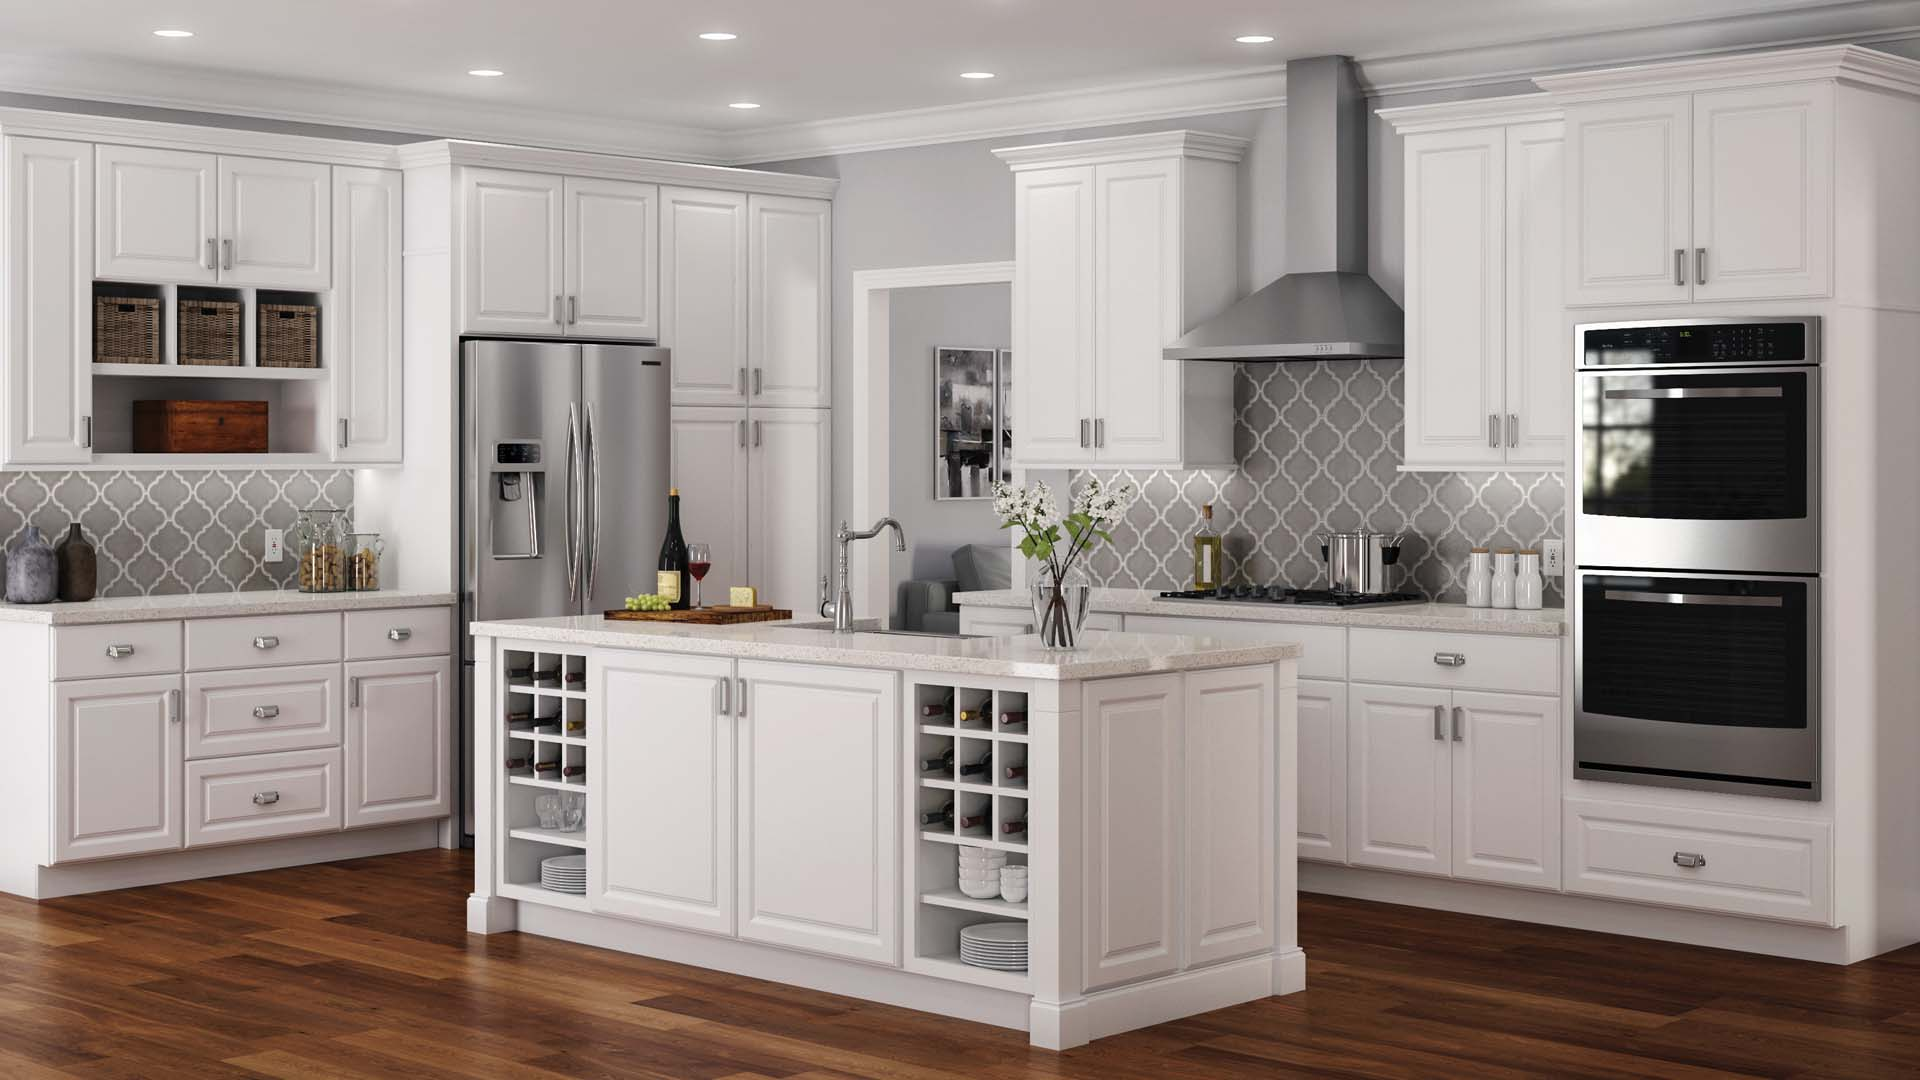 Hampton Cabinet Accessories in White - Kitchen - The Home ...